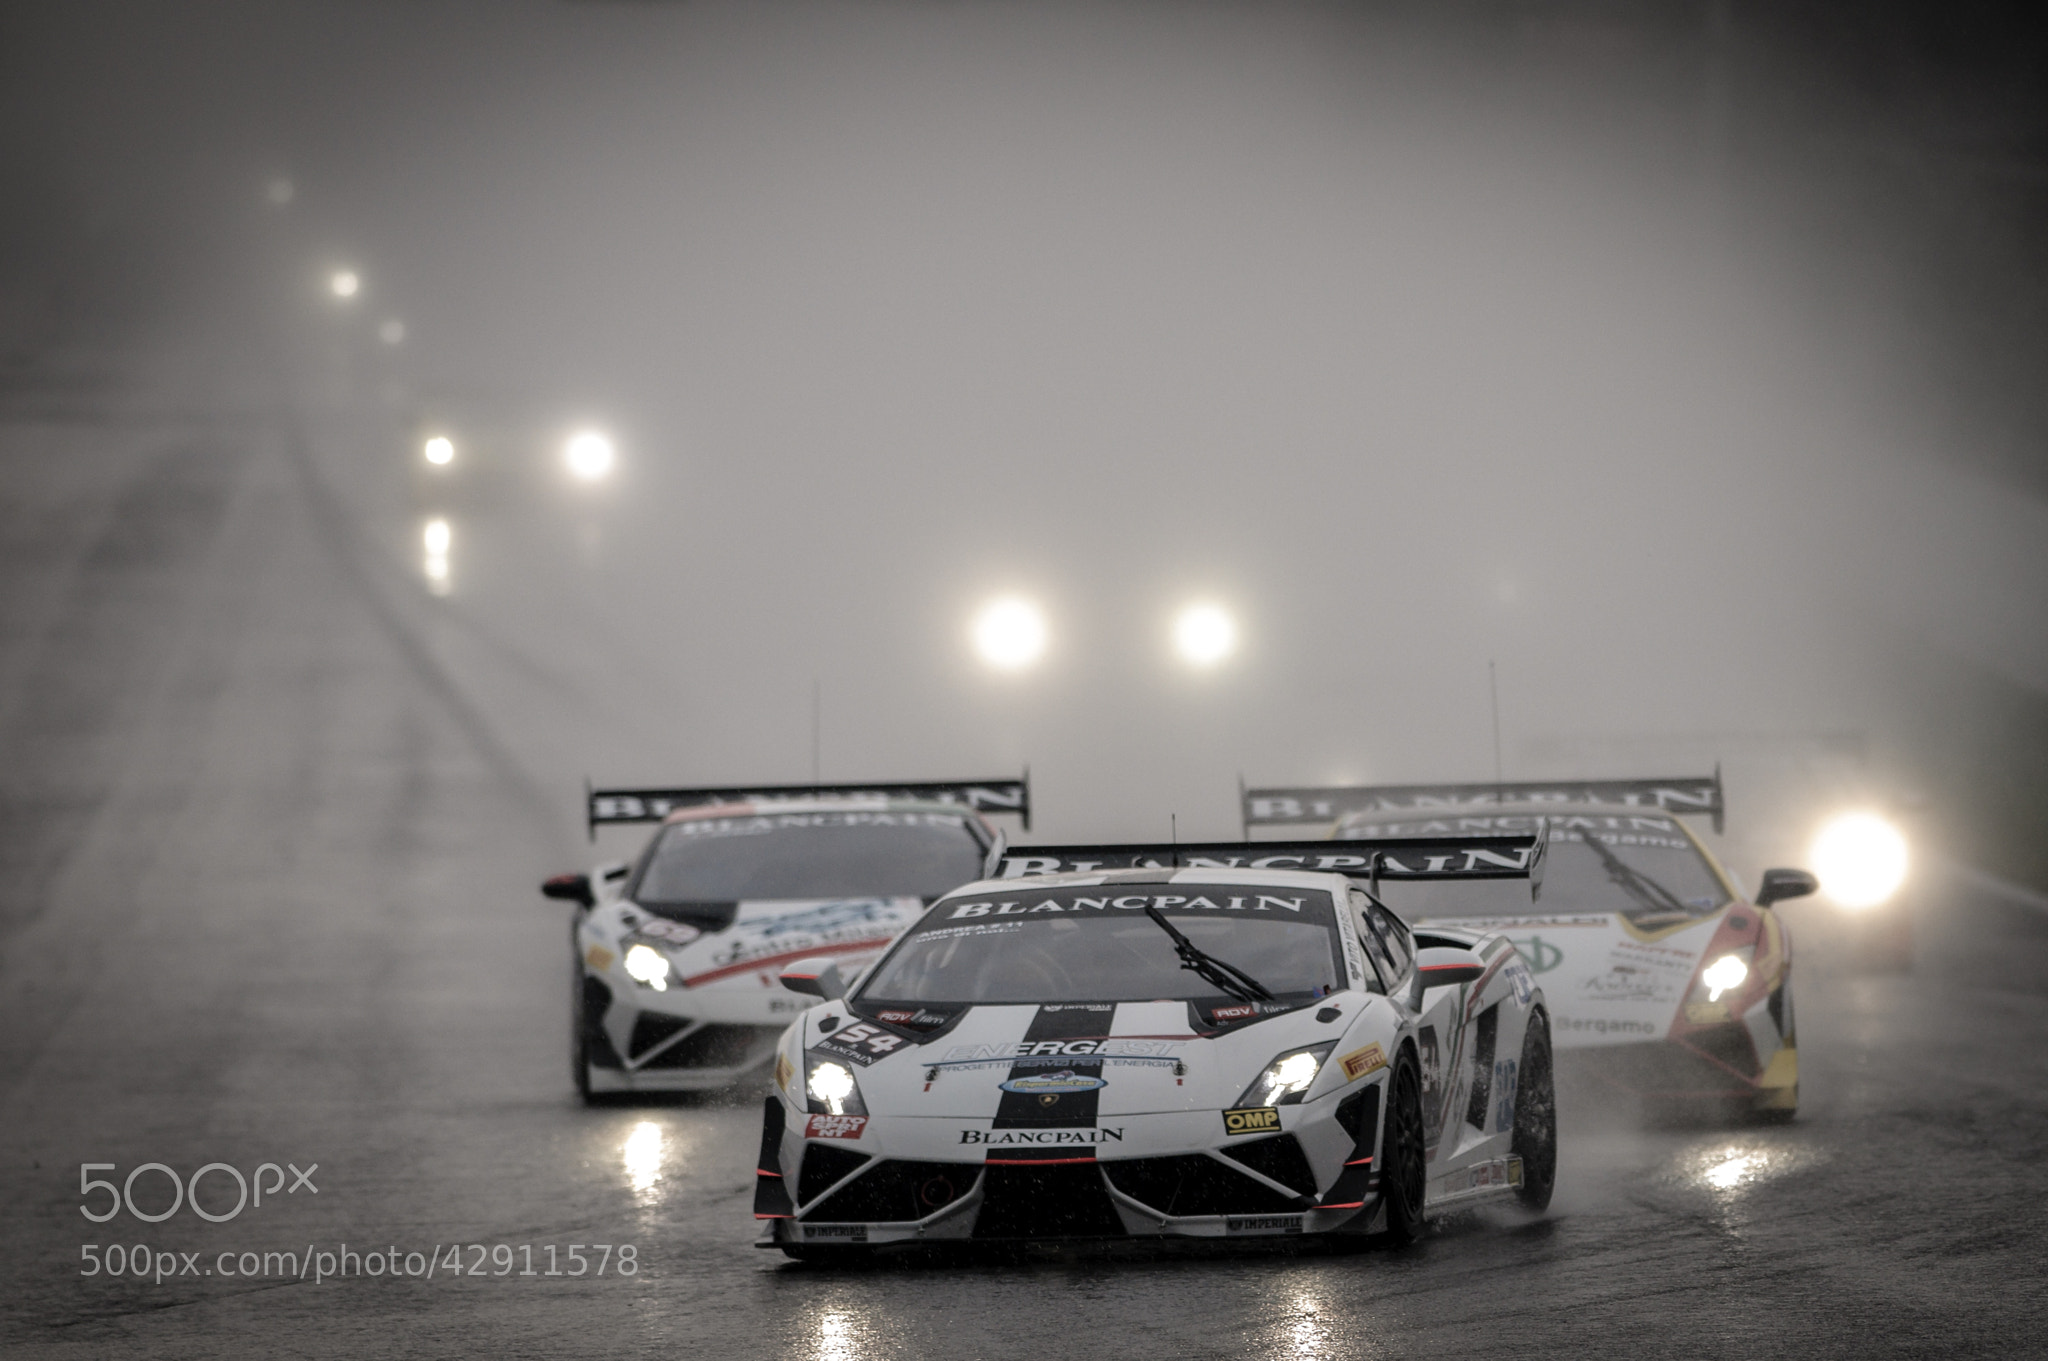 Photograph Racing in the rain by blank_re on 500px